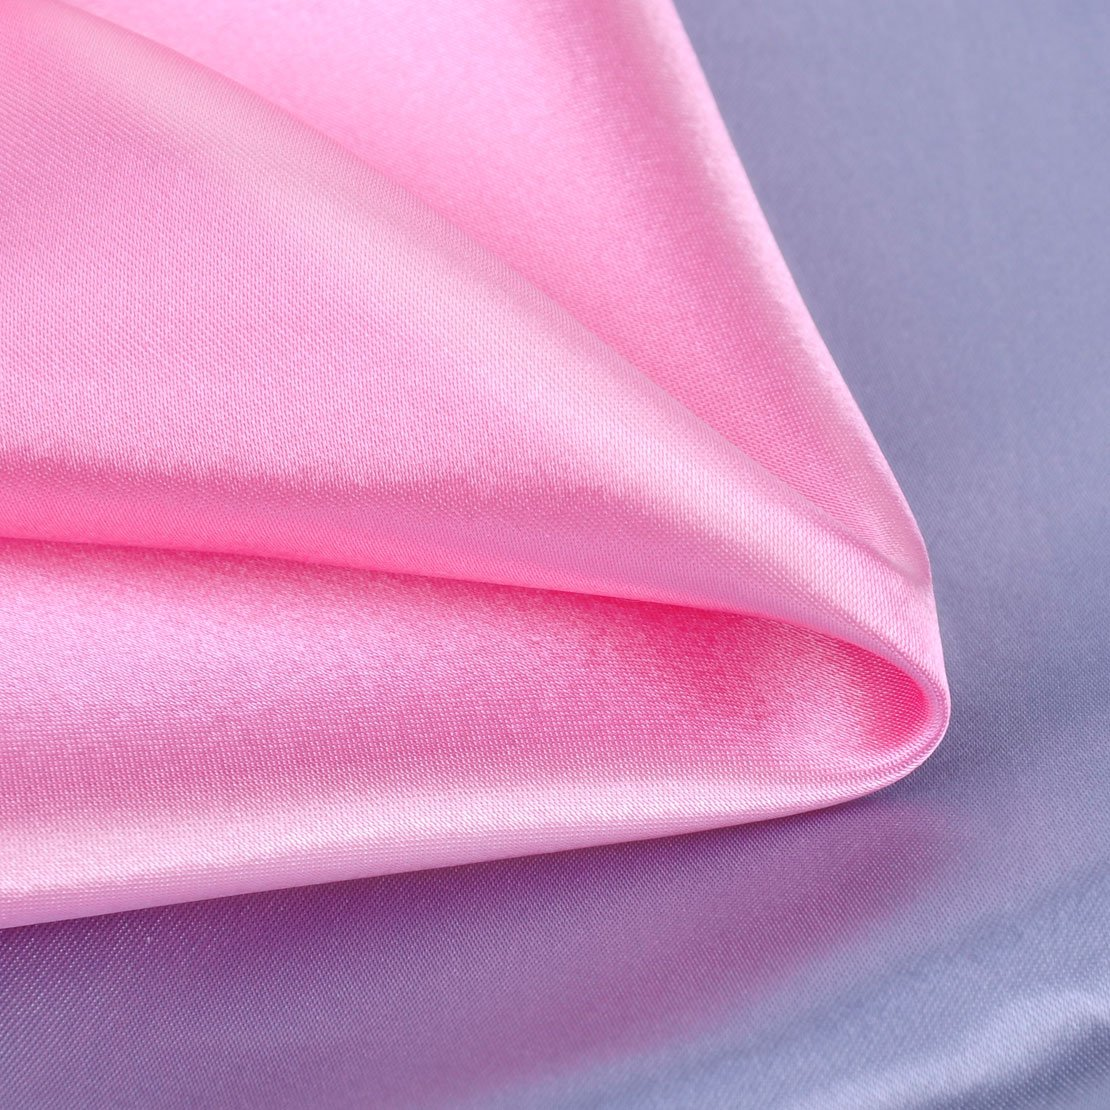 26 Pack Men's Silk Pocket Square Handkerchief Hanky Wedding Party Gift ciciTree by ciciTree (Image #2)